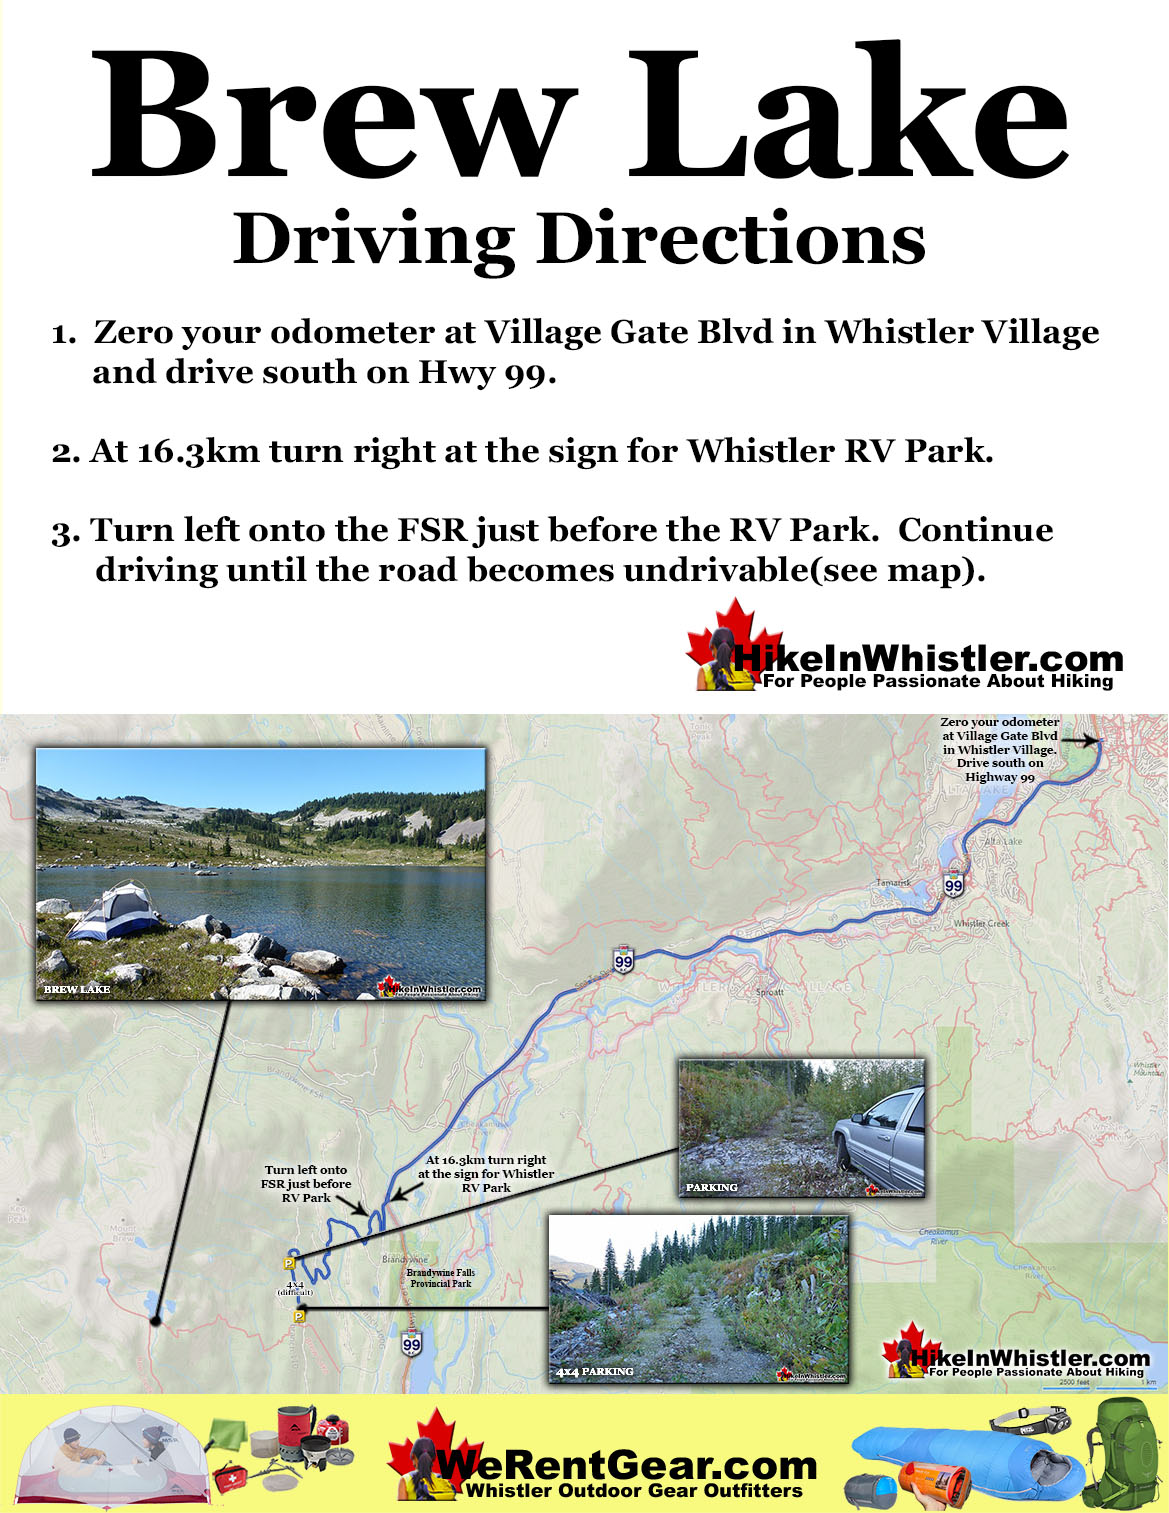 Brew Lake Driving Directions Map